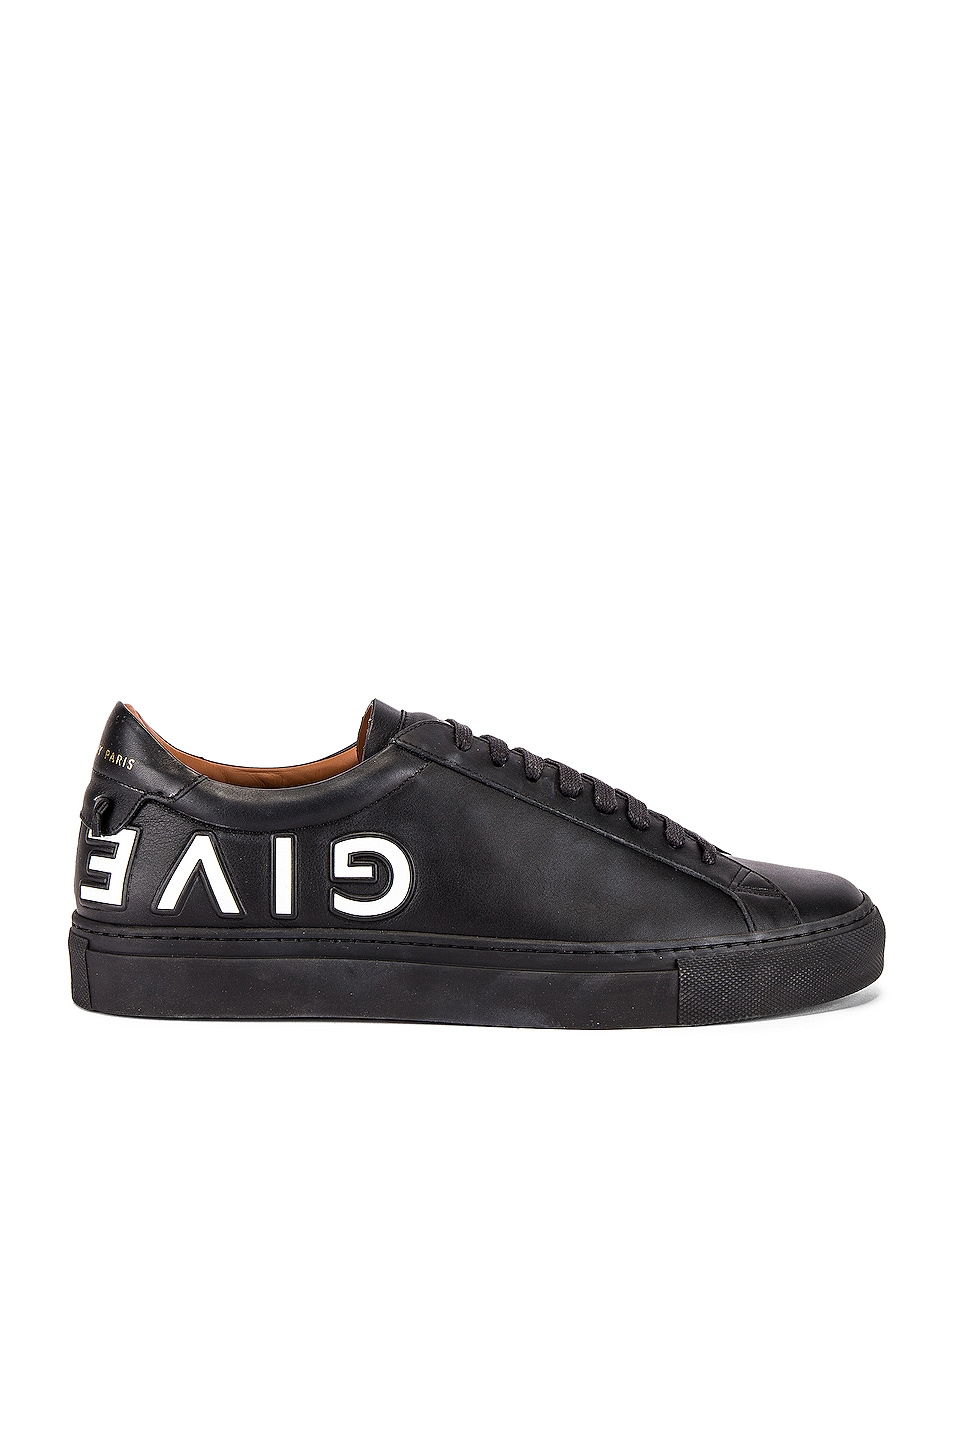 Image 2 of Givenchy Urban Street Sneaker in Black & White